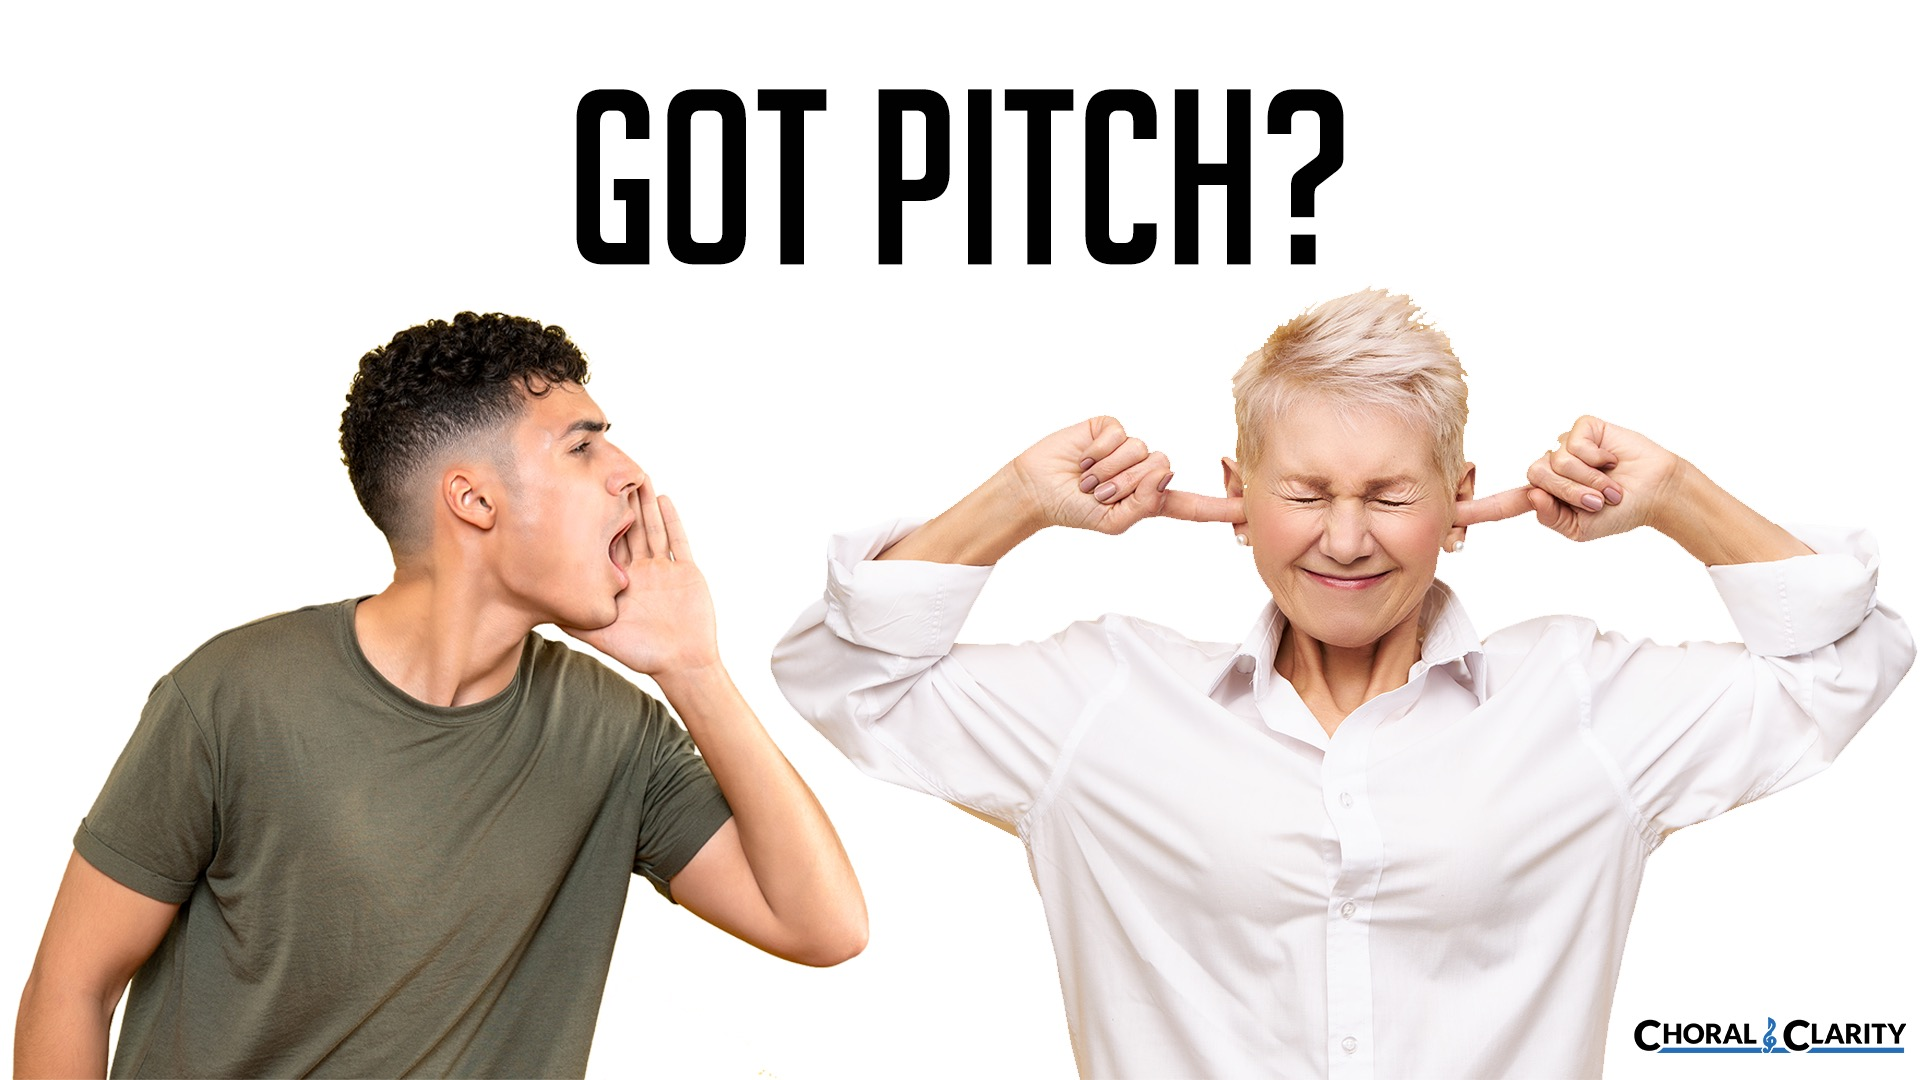 Get Anyone to Match Pitch: 5 Minutes & 5 Easy Steps